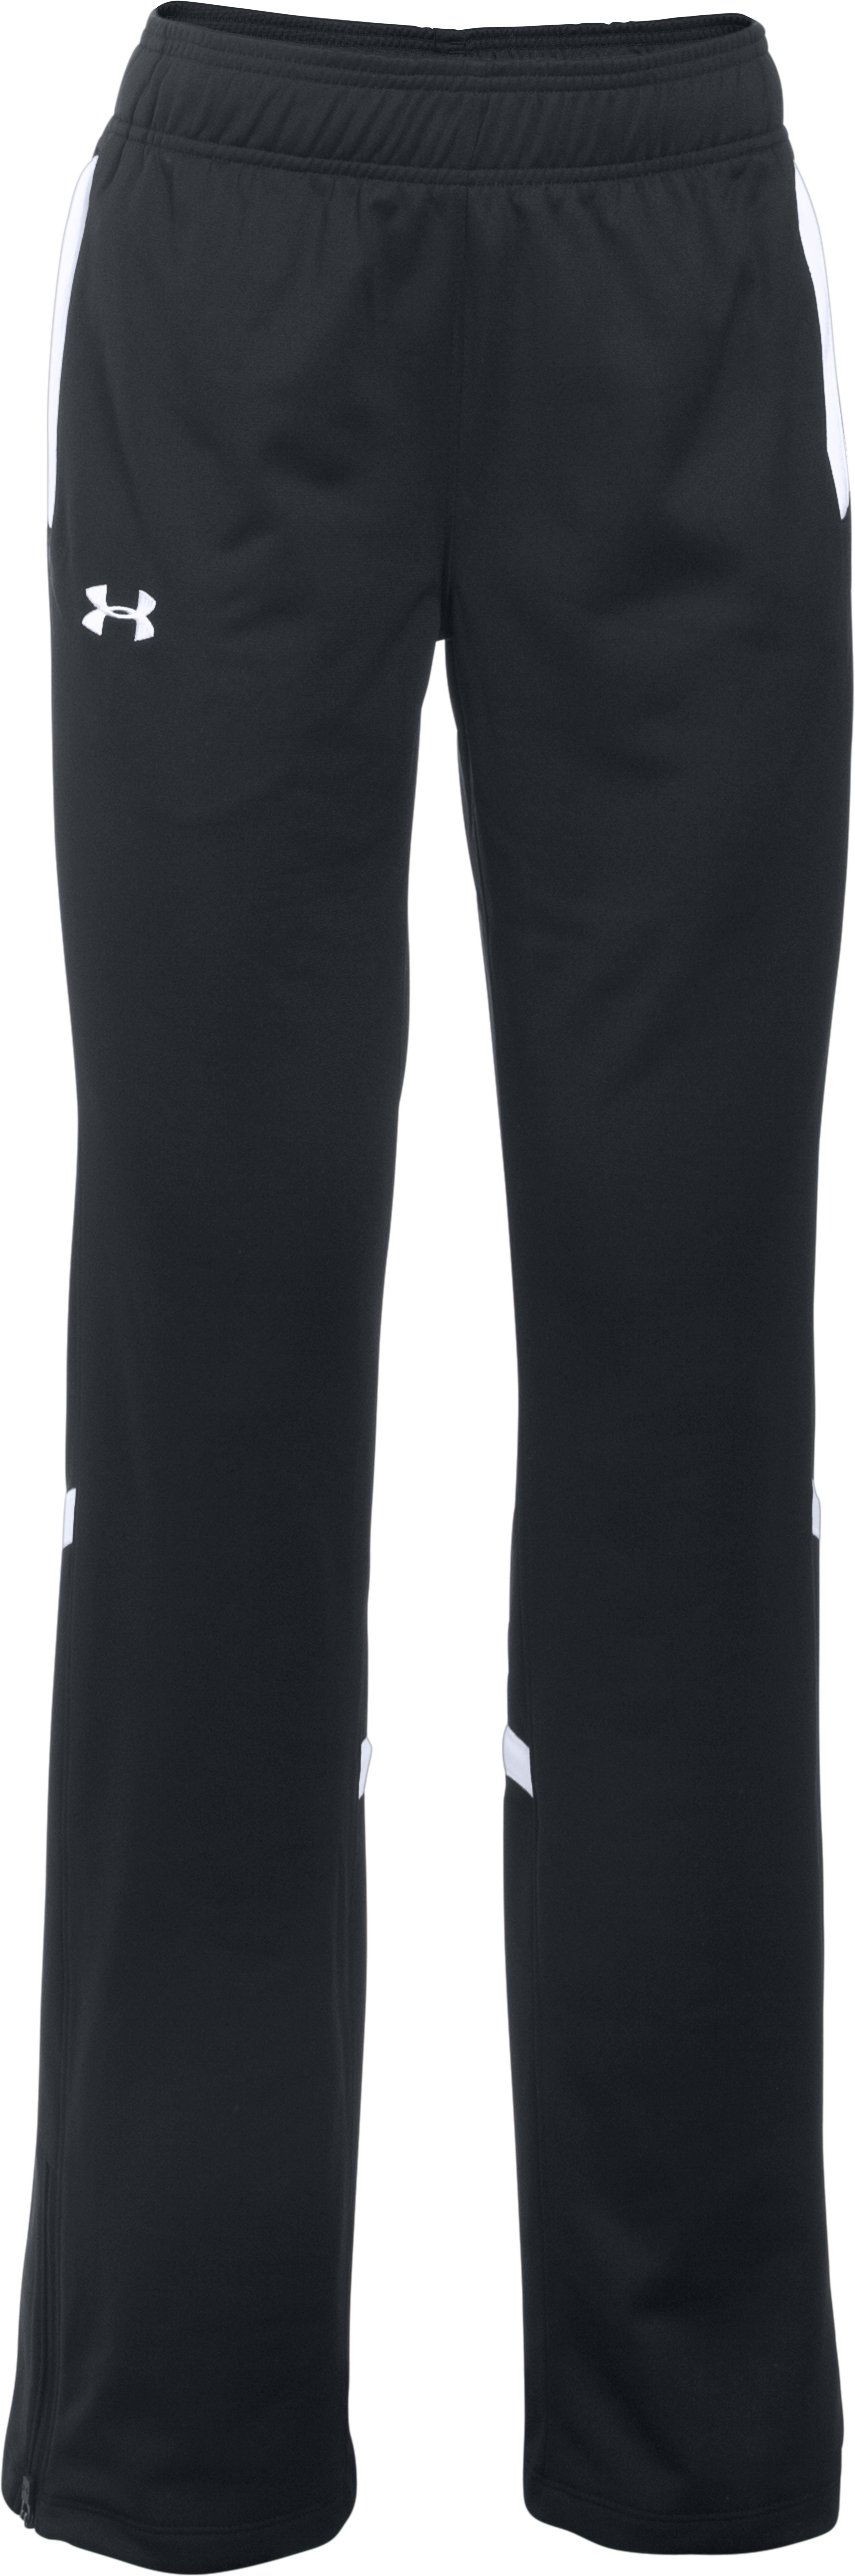 Women's UA Qualifier Knit Warm-Up Pants, Black , undefined